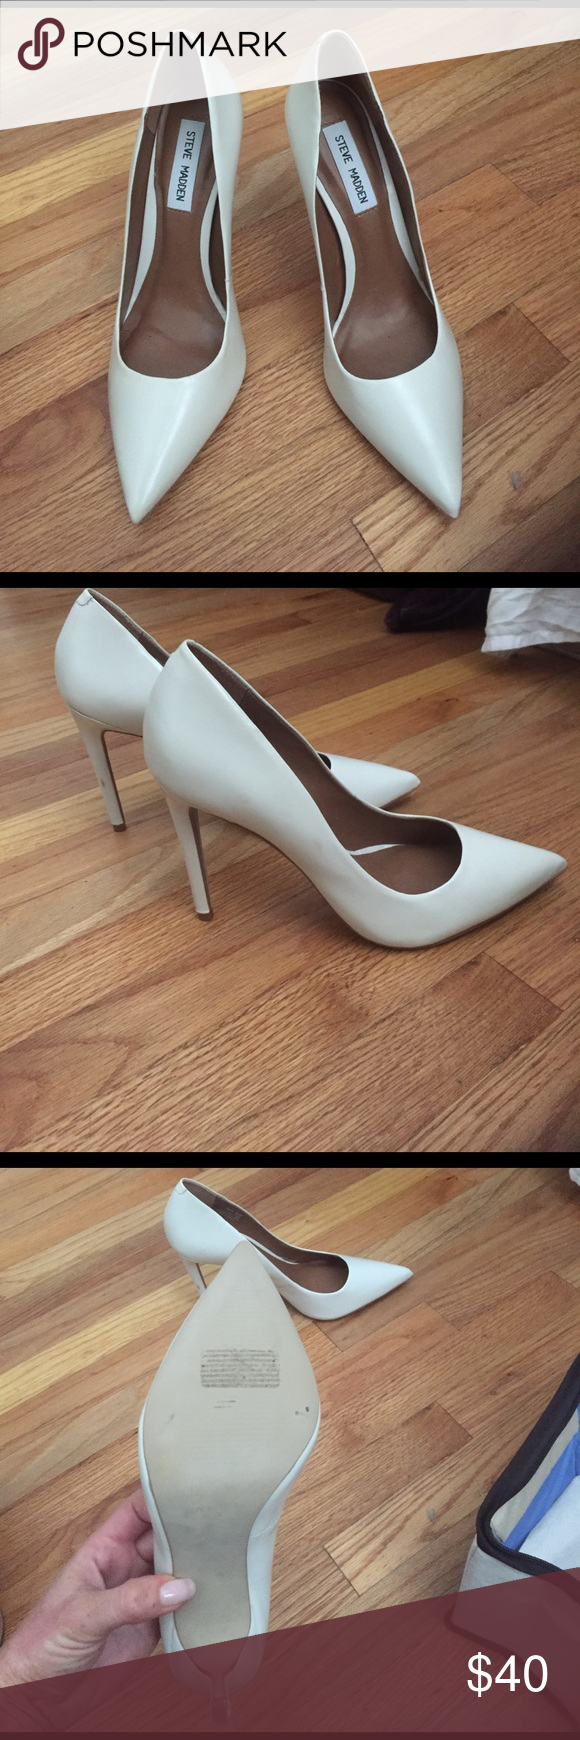 Steve Madden White Pointed Toed Pumps Never worn, no flaws, size 8.5 Steve Madden Shoes Heels